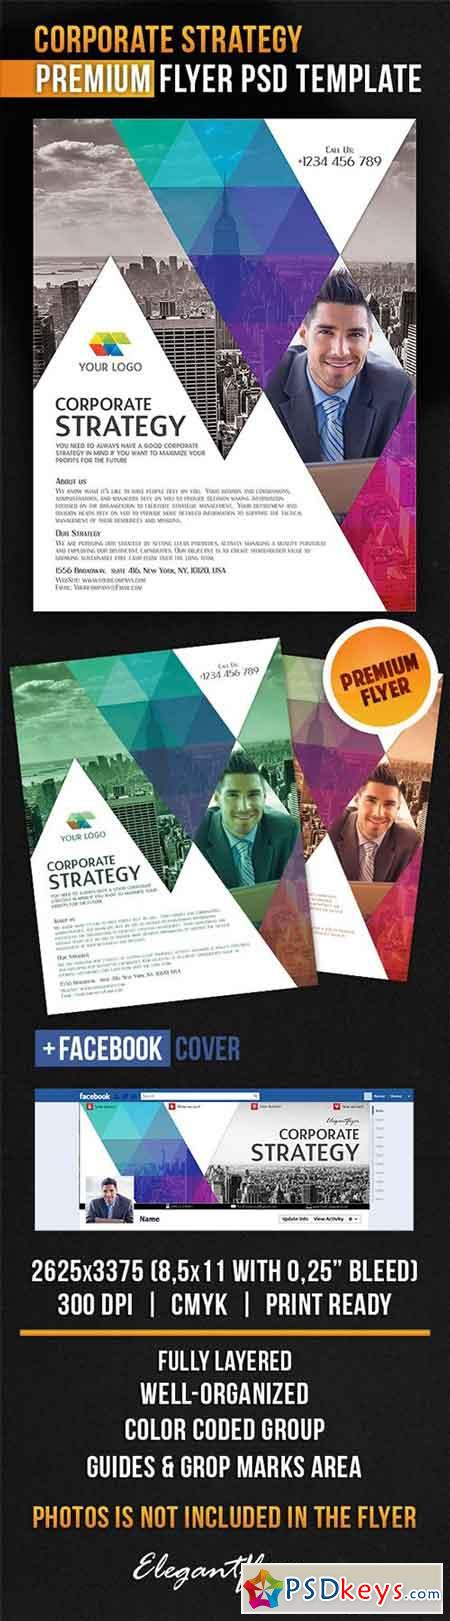 Corporate Strategy Flyer PSD Template + Facebook Cover